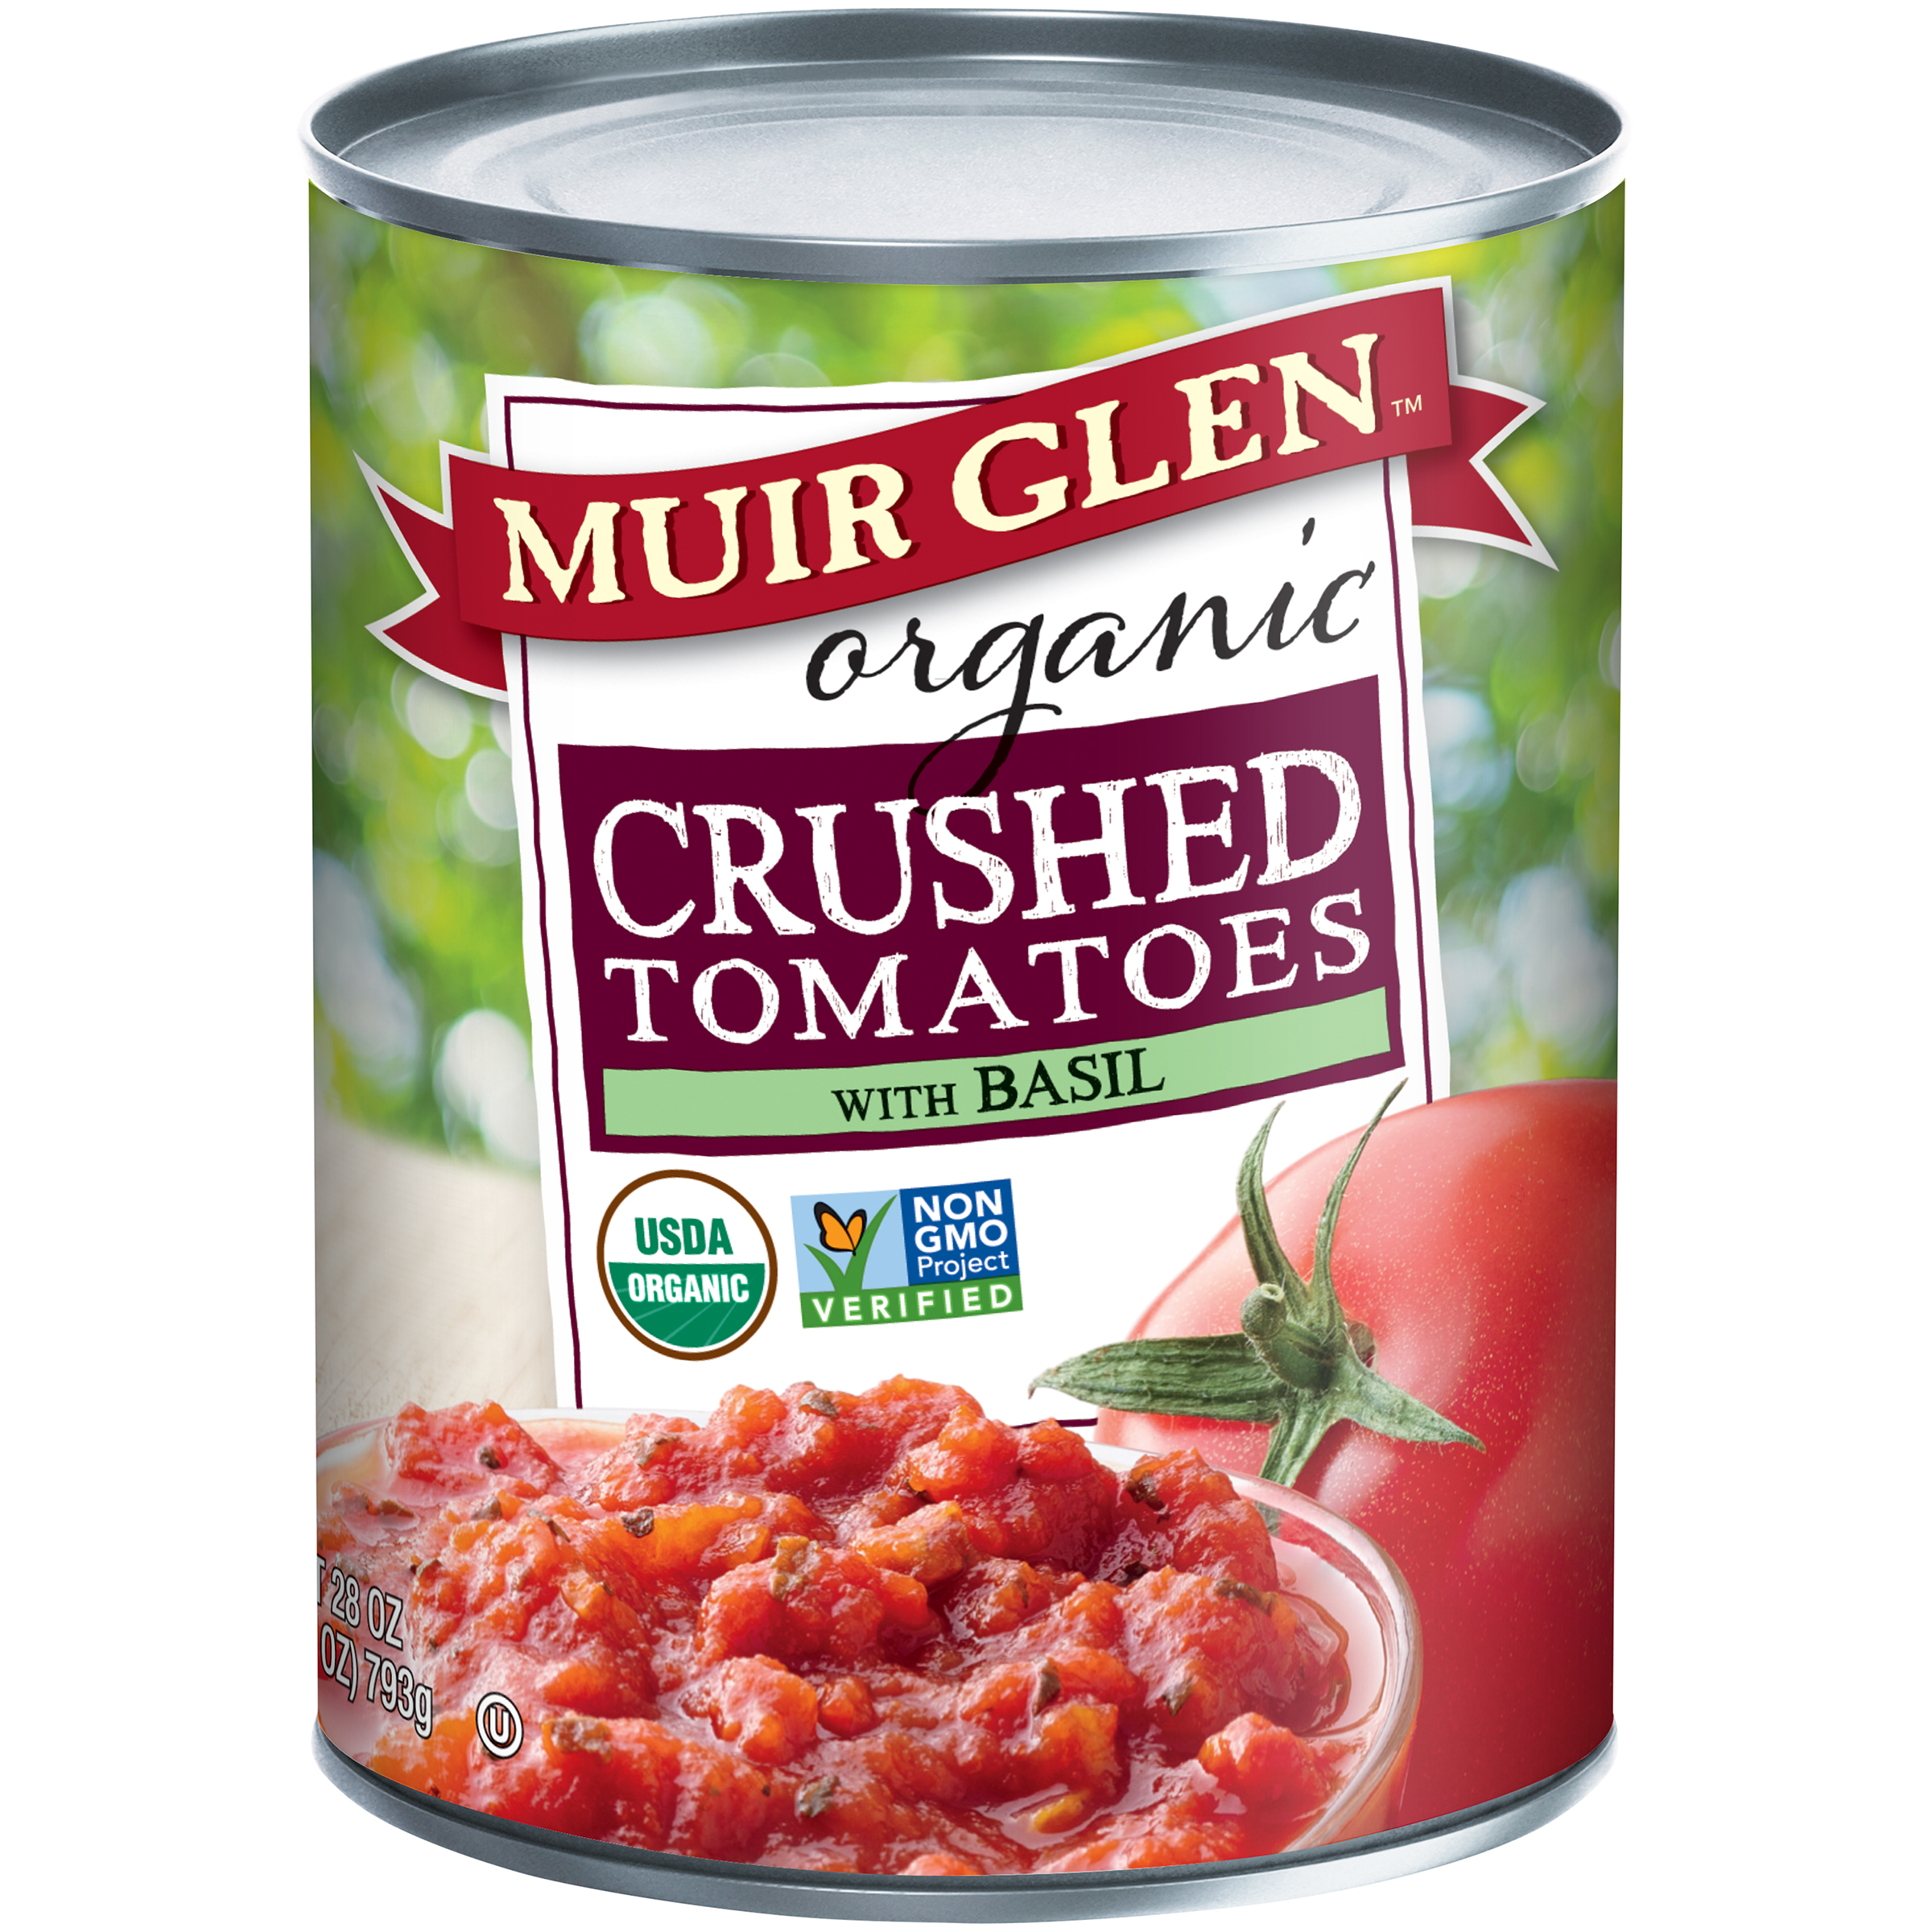 Muir Glen��� Organic Crushed Tomatoes with Basil 28 oz. Can